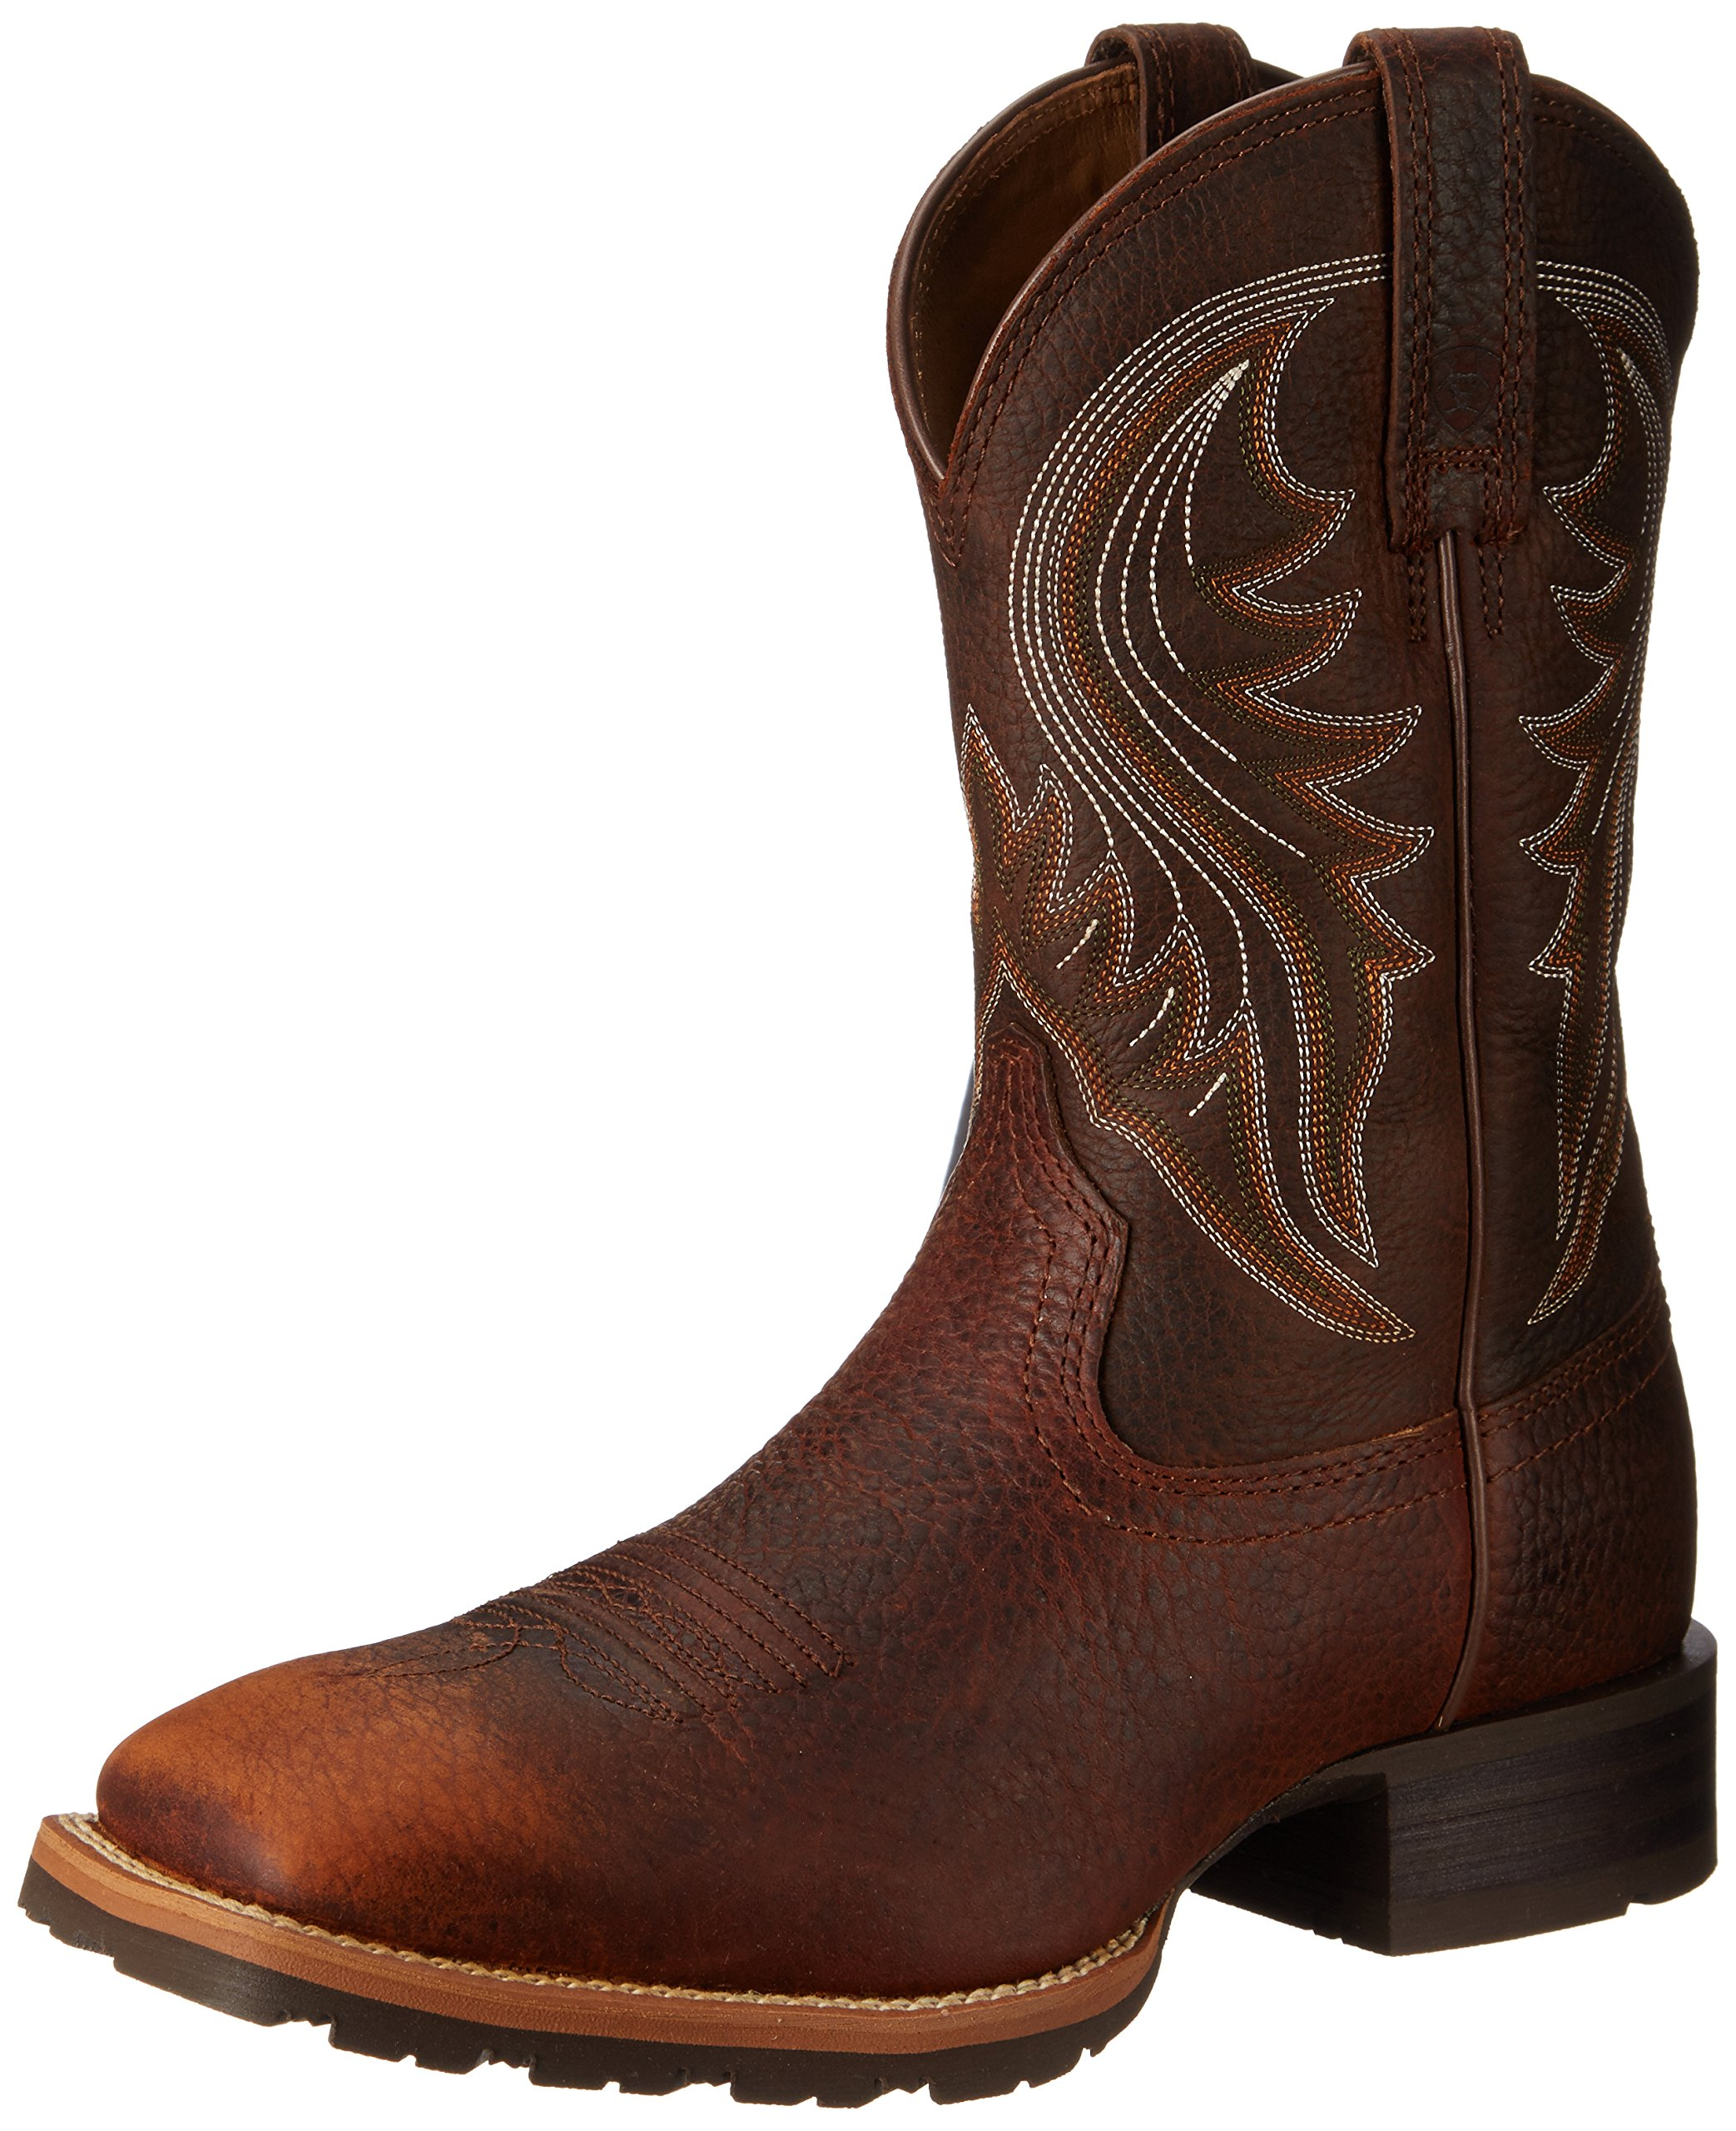 Ariat Men's Hybrid Rancher Western Boot, Brown Oiled Rowdy, 11.5 M US